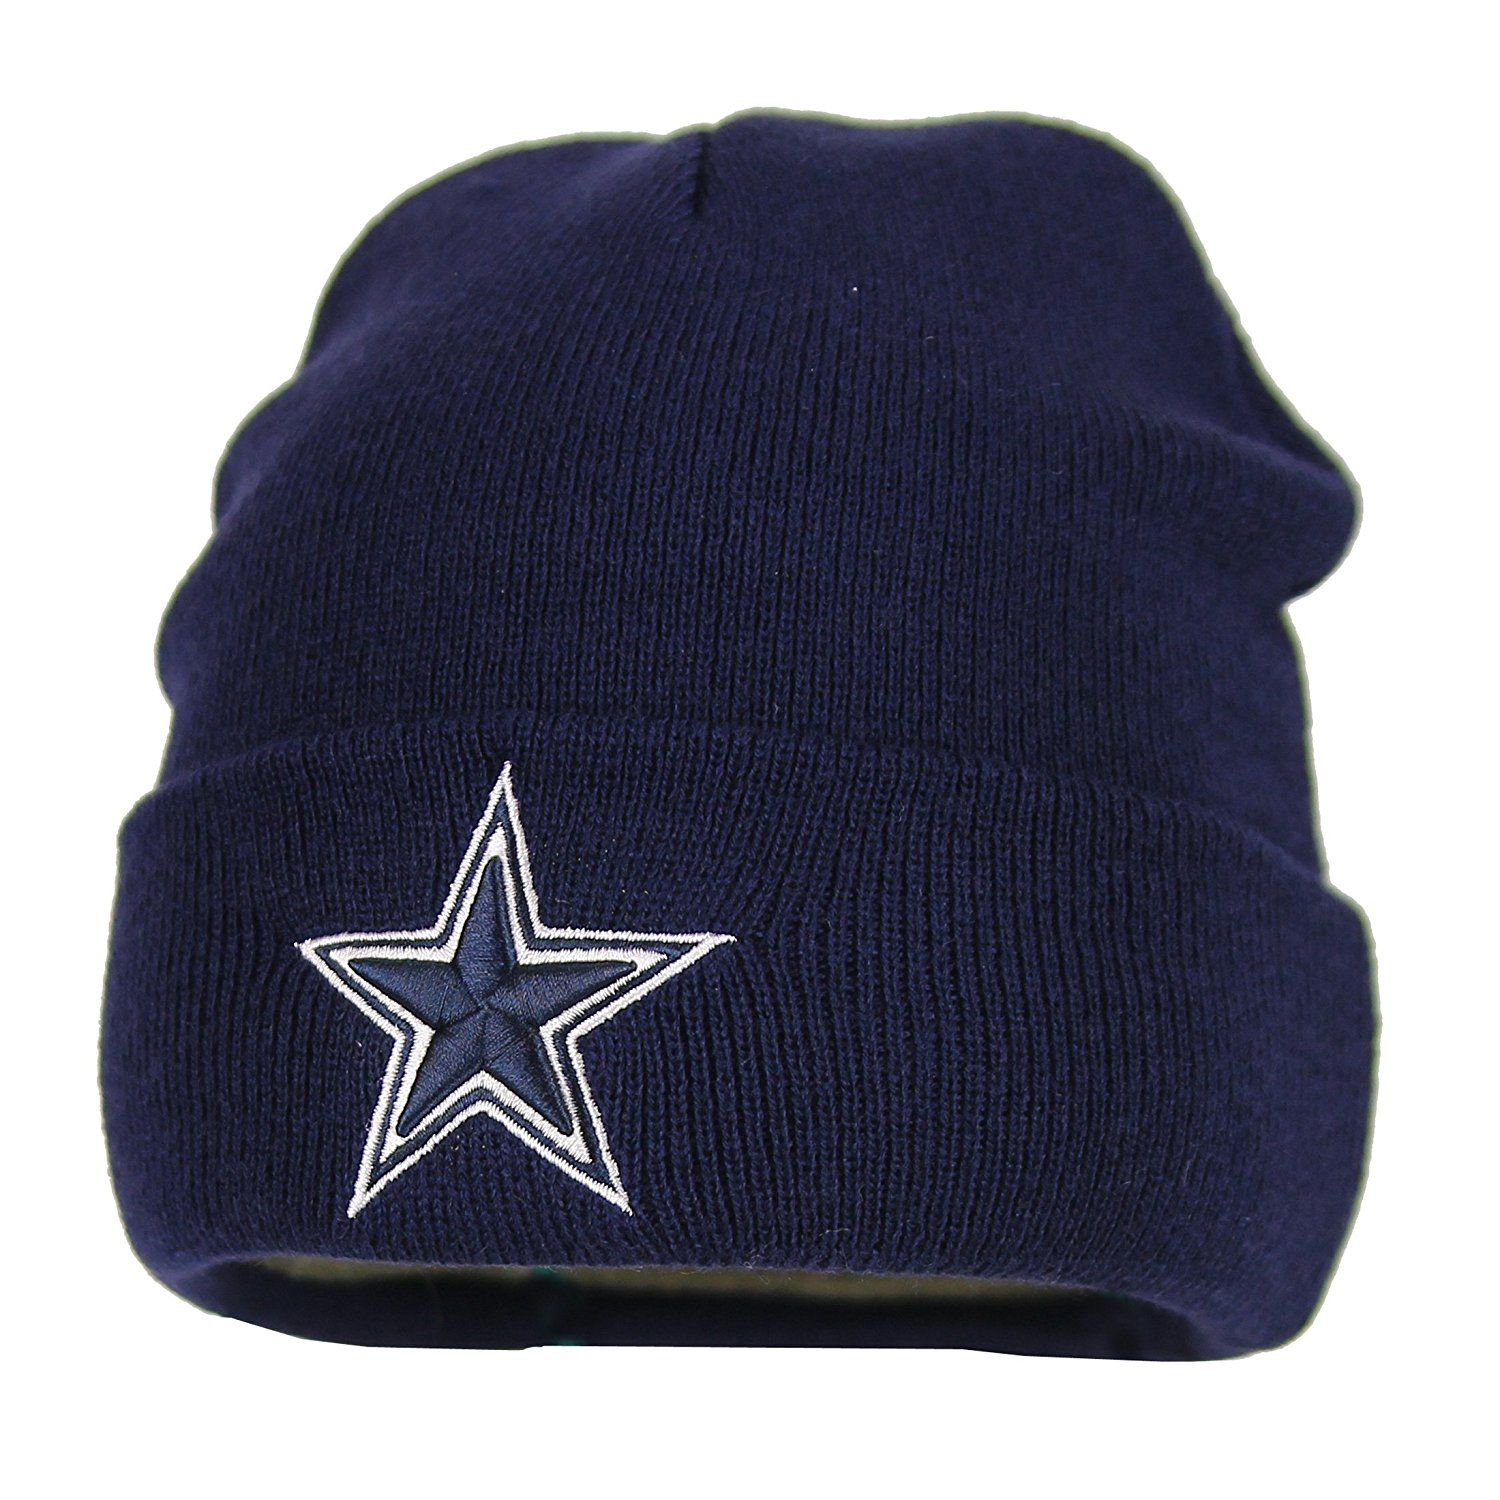 3994f20d083a0 Amazon.com   Dallas Cowboys Basic Knit Hat (Navy)   Sports Fan Beanies    Sports   Outdoors